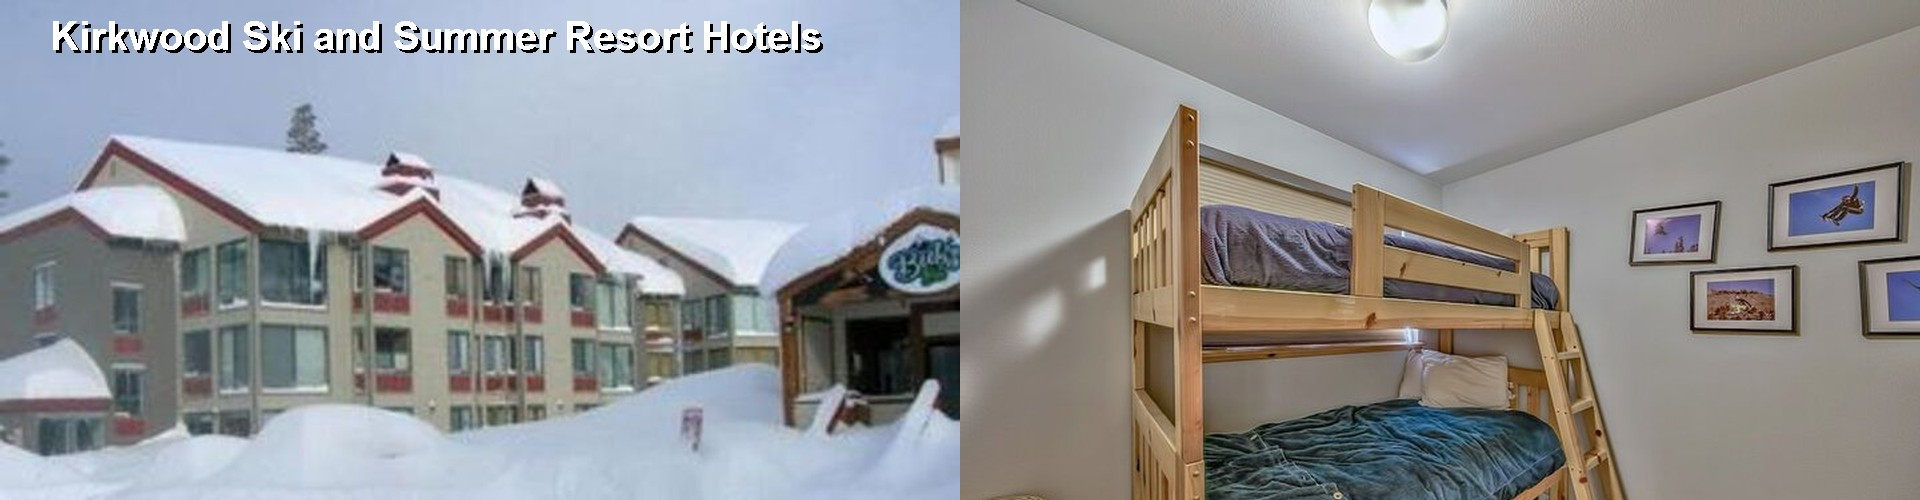 5 Best Hotels near Kirkwood Ski and Summer Resort